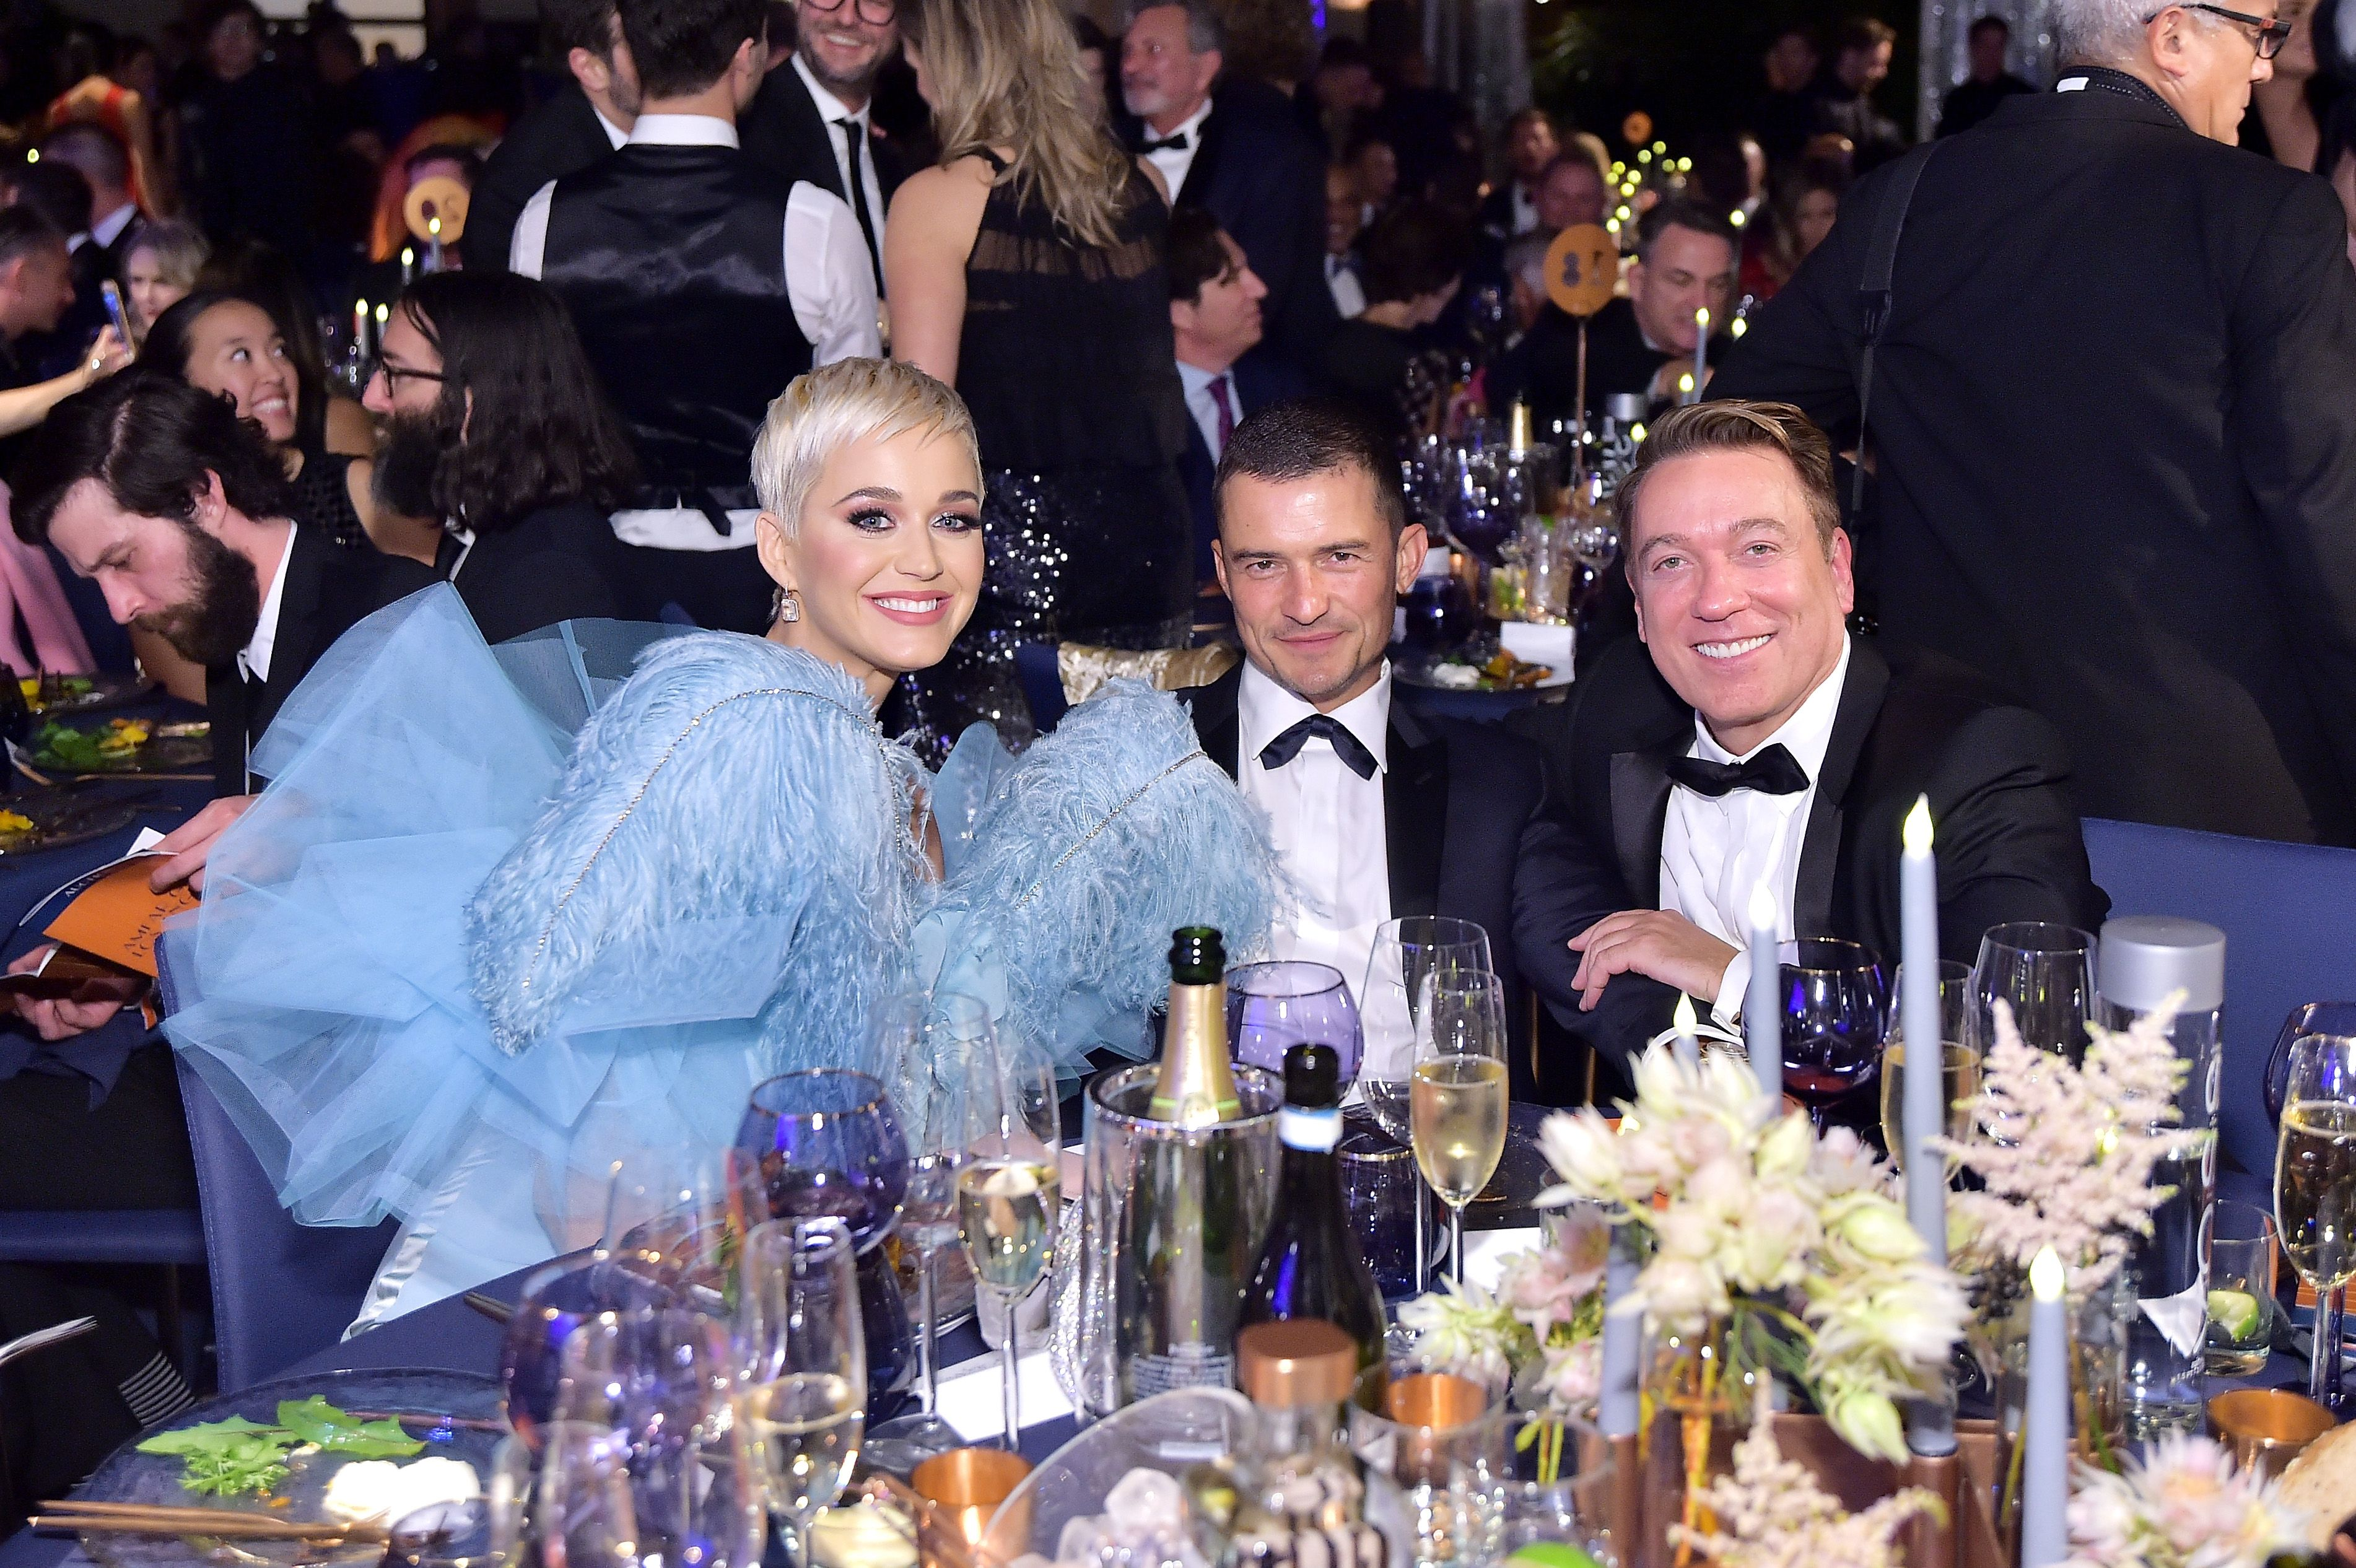 Who is katy perry dating in 2020